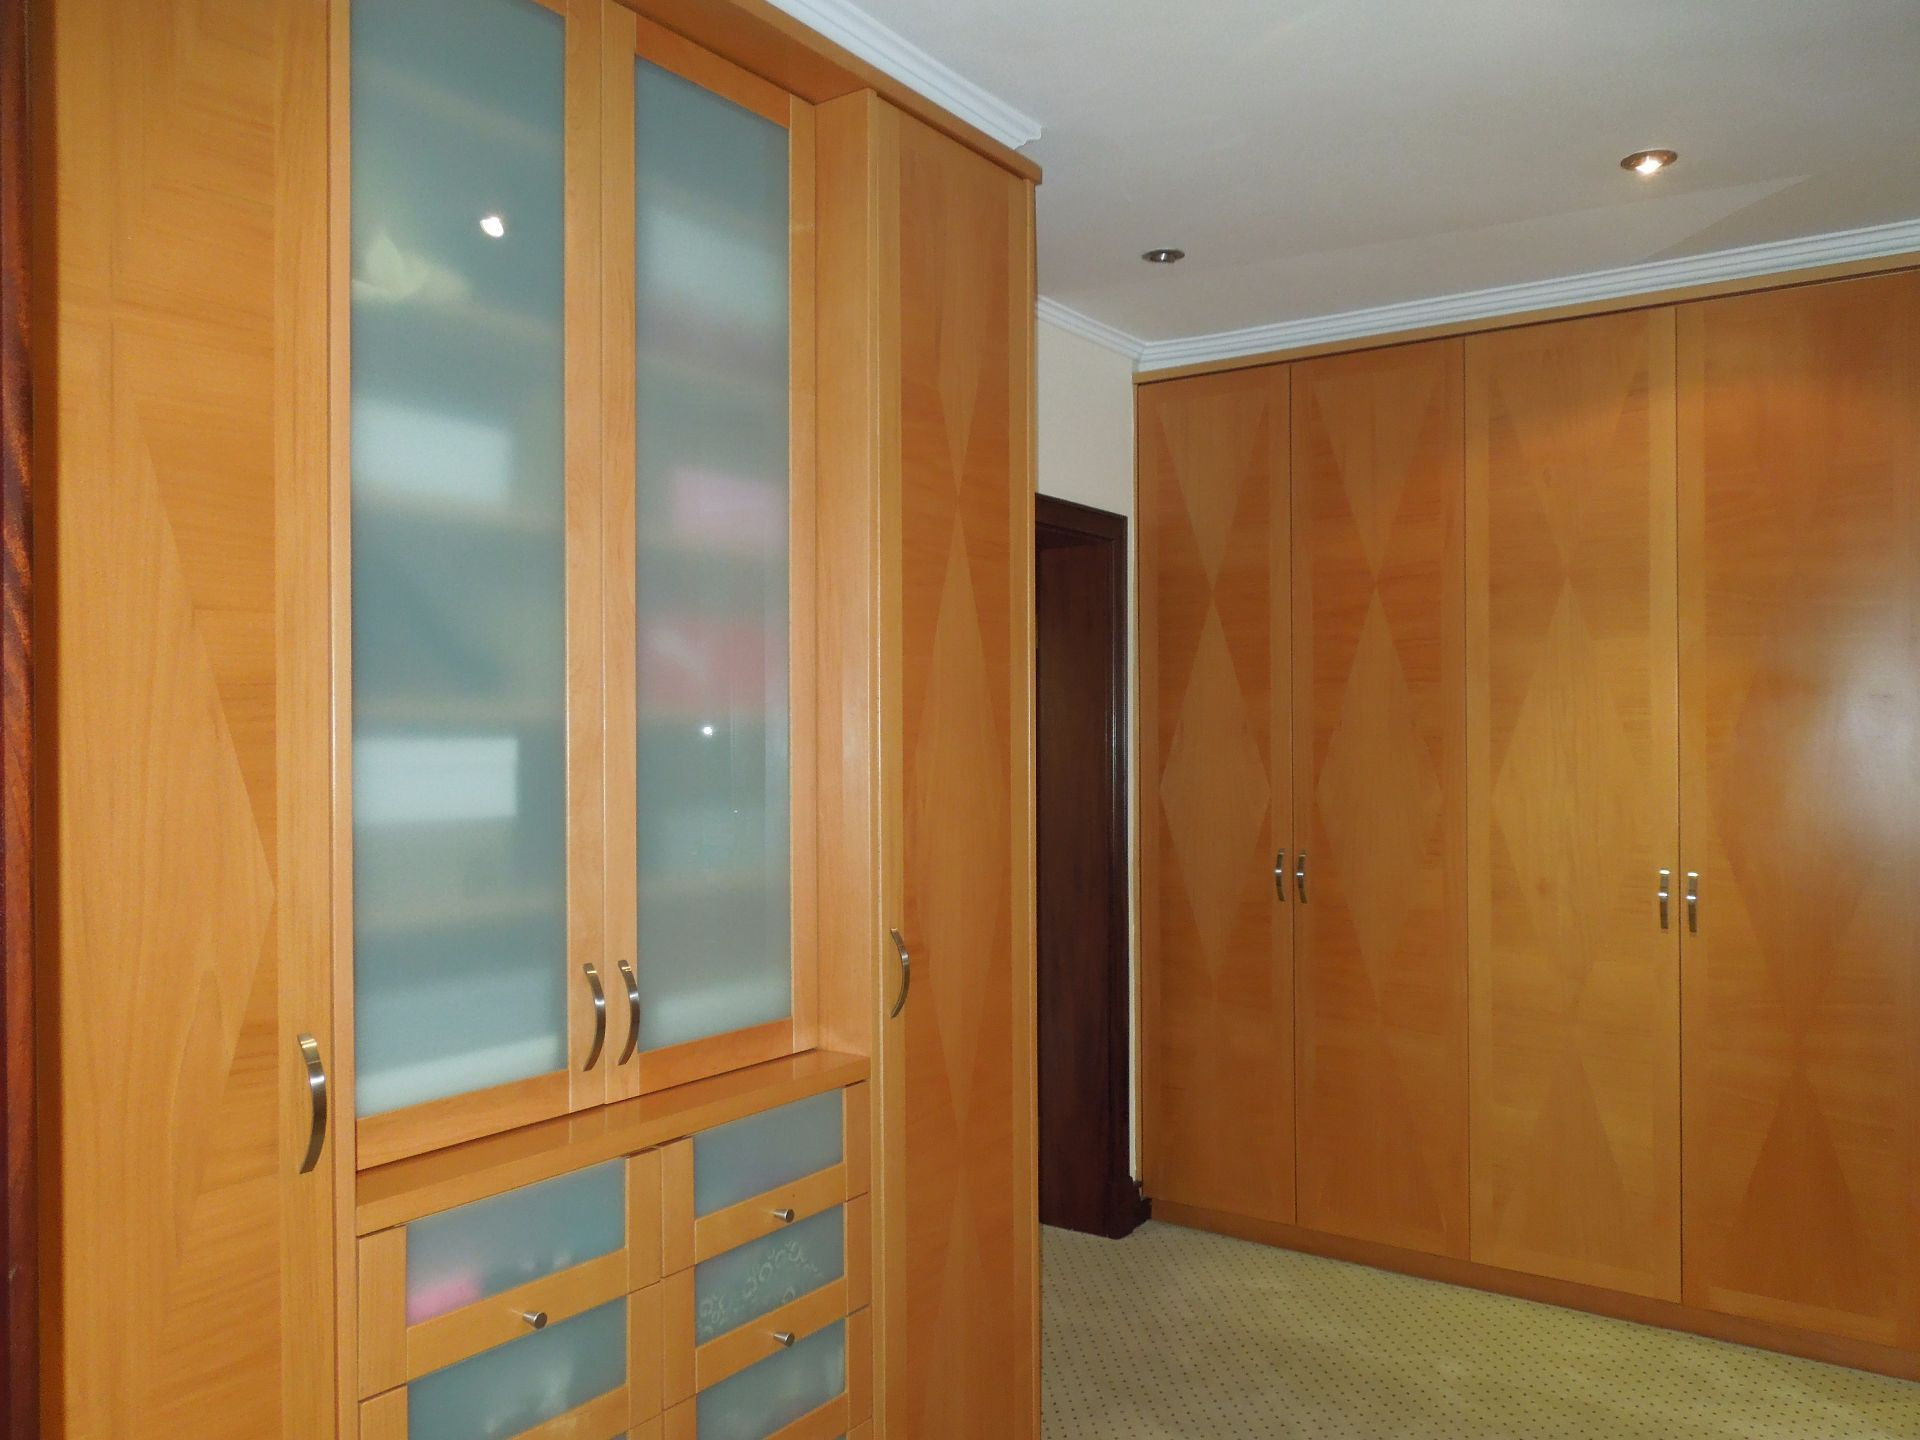 Chancliff A H property for sale. Ref No: 13575062. Picture no 20